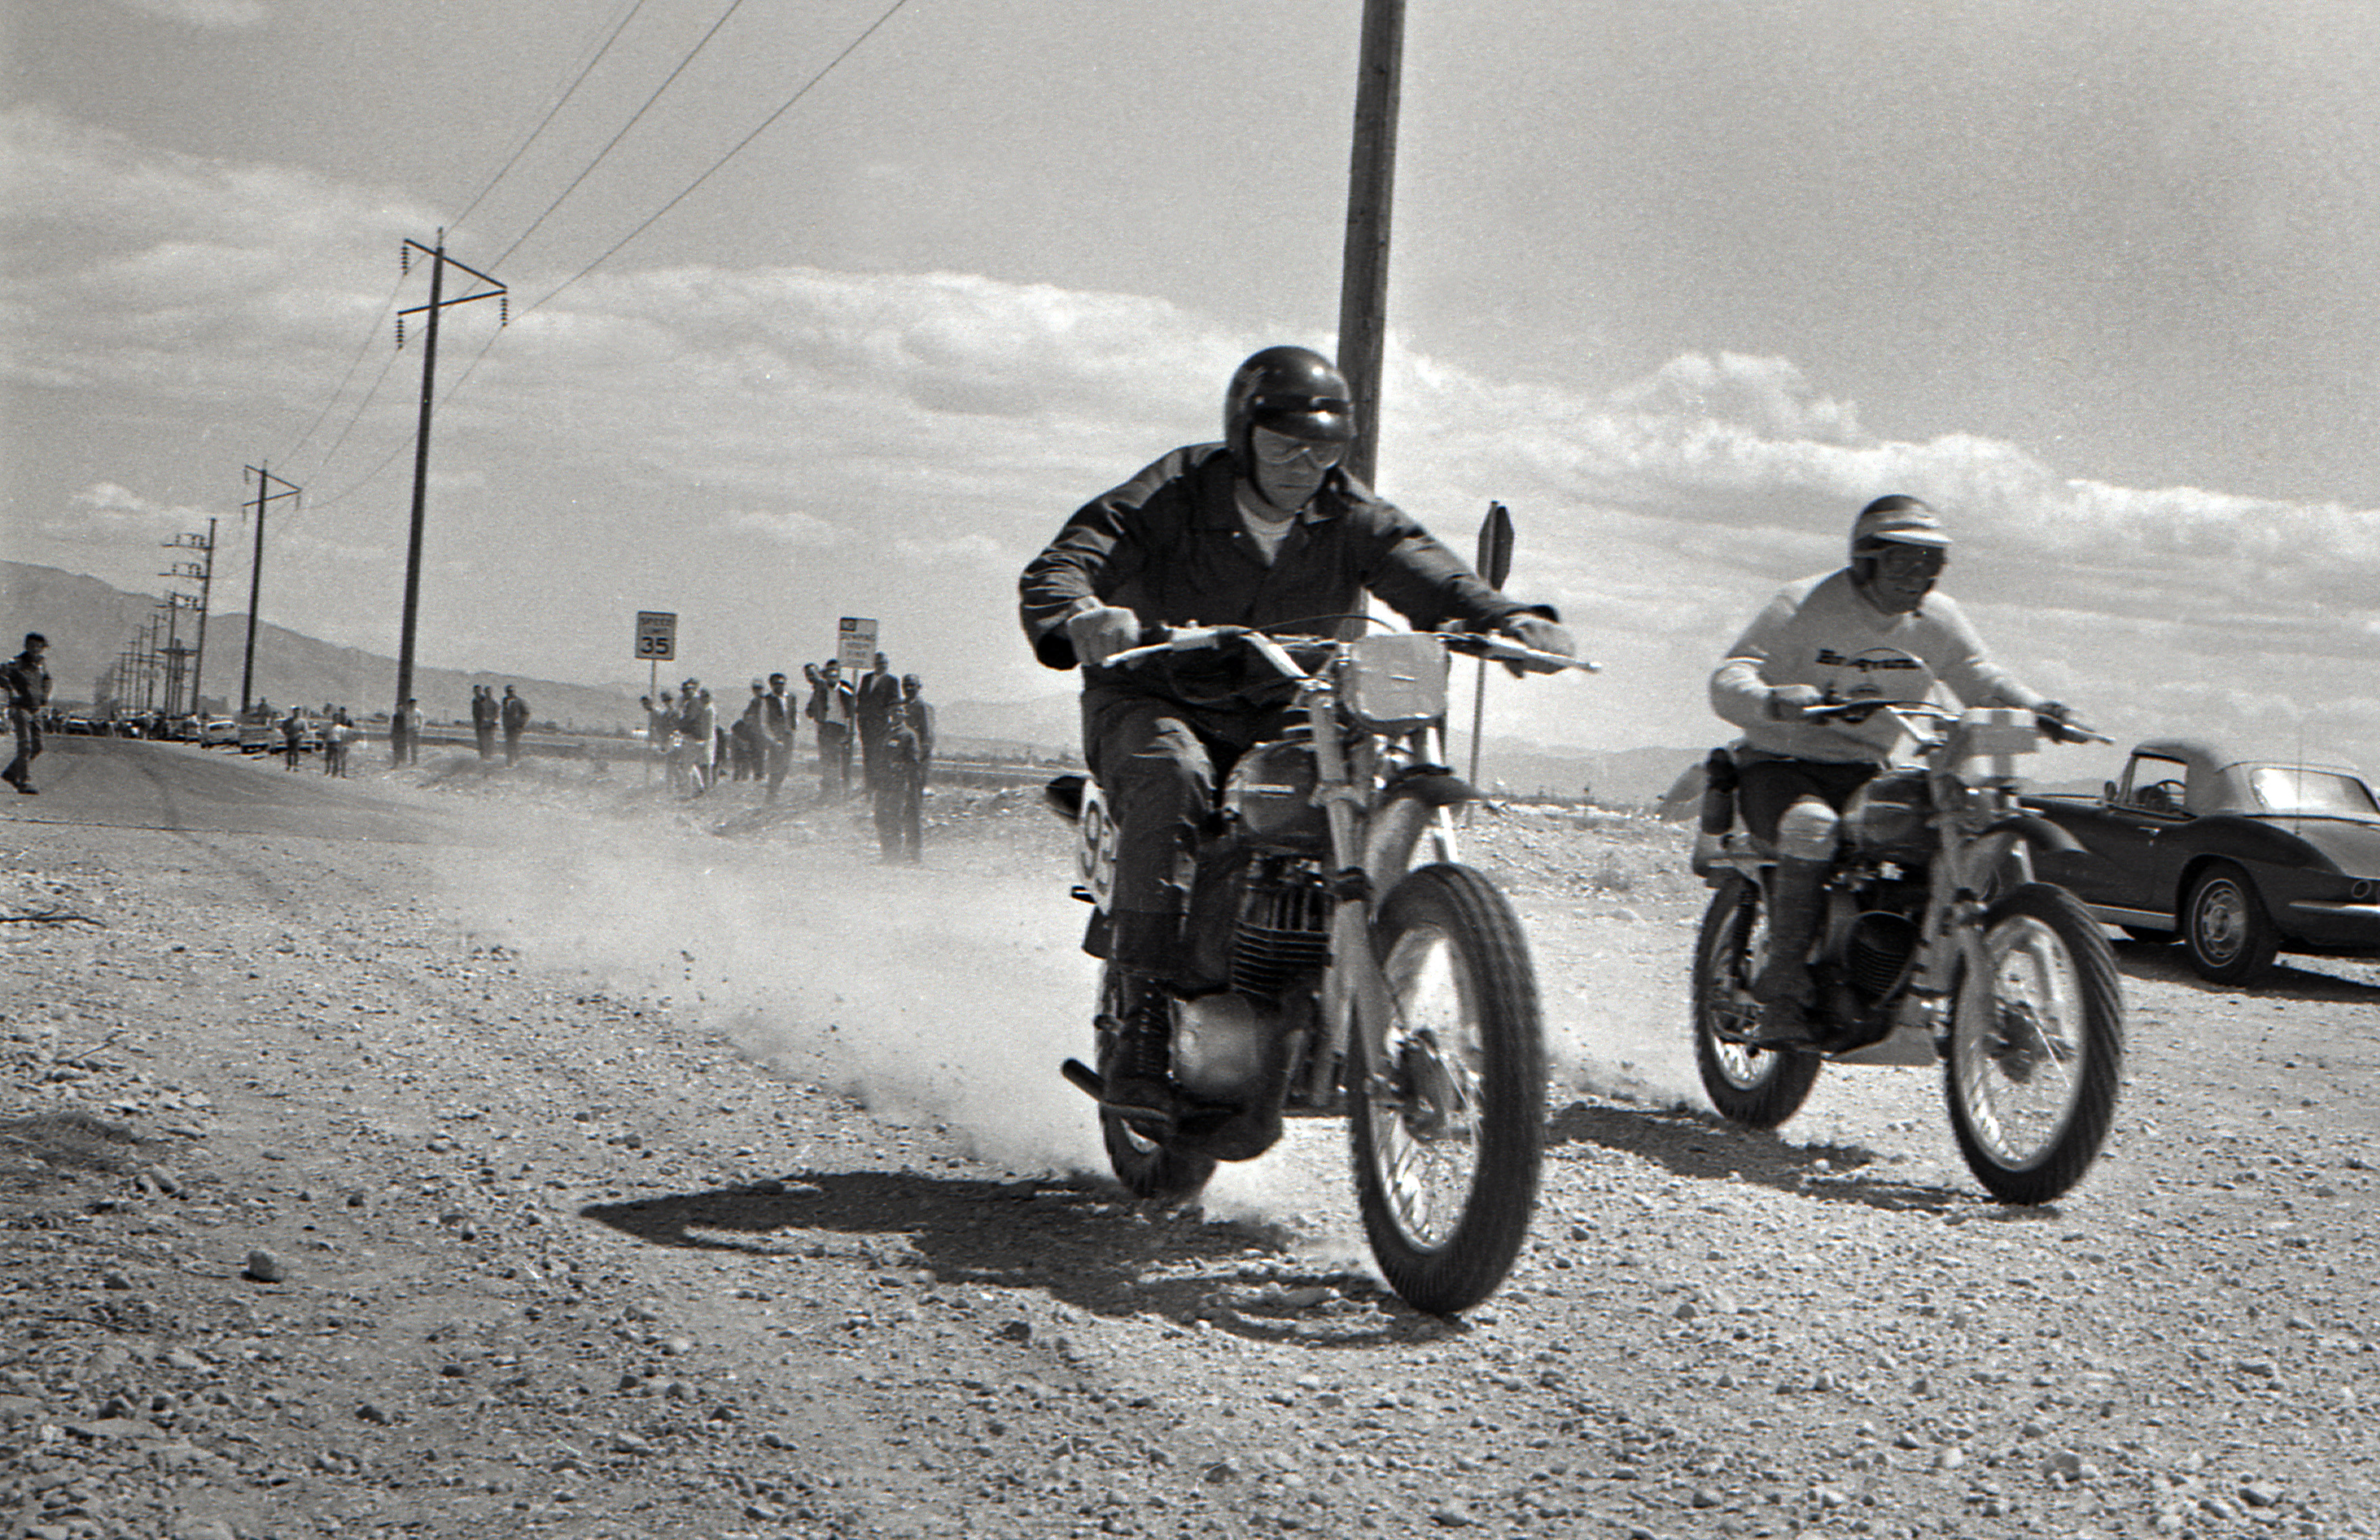 The Mint 400: Fear and Loathing Part II